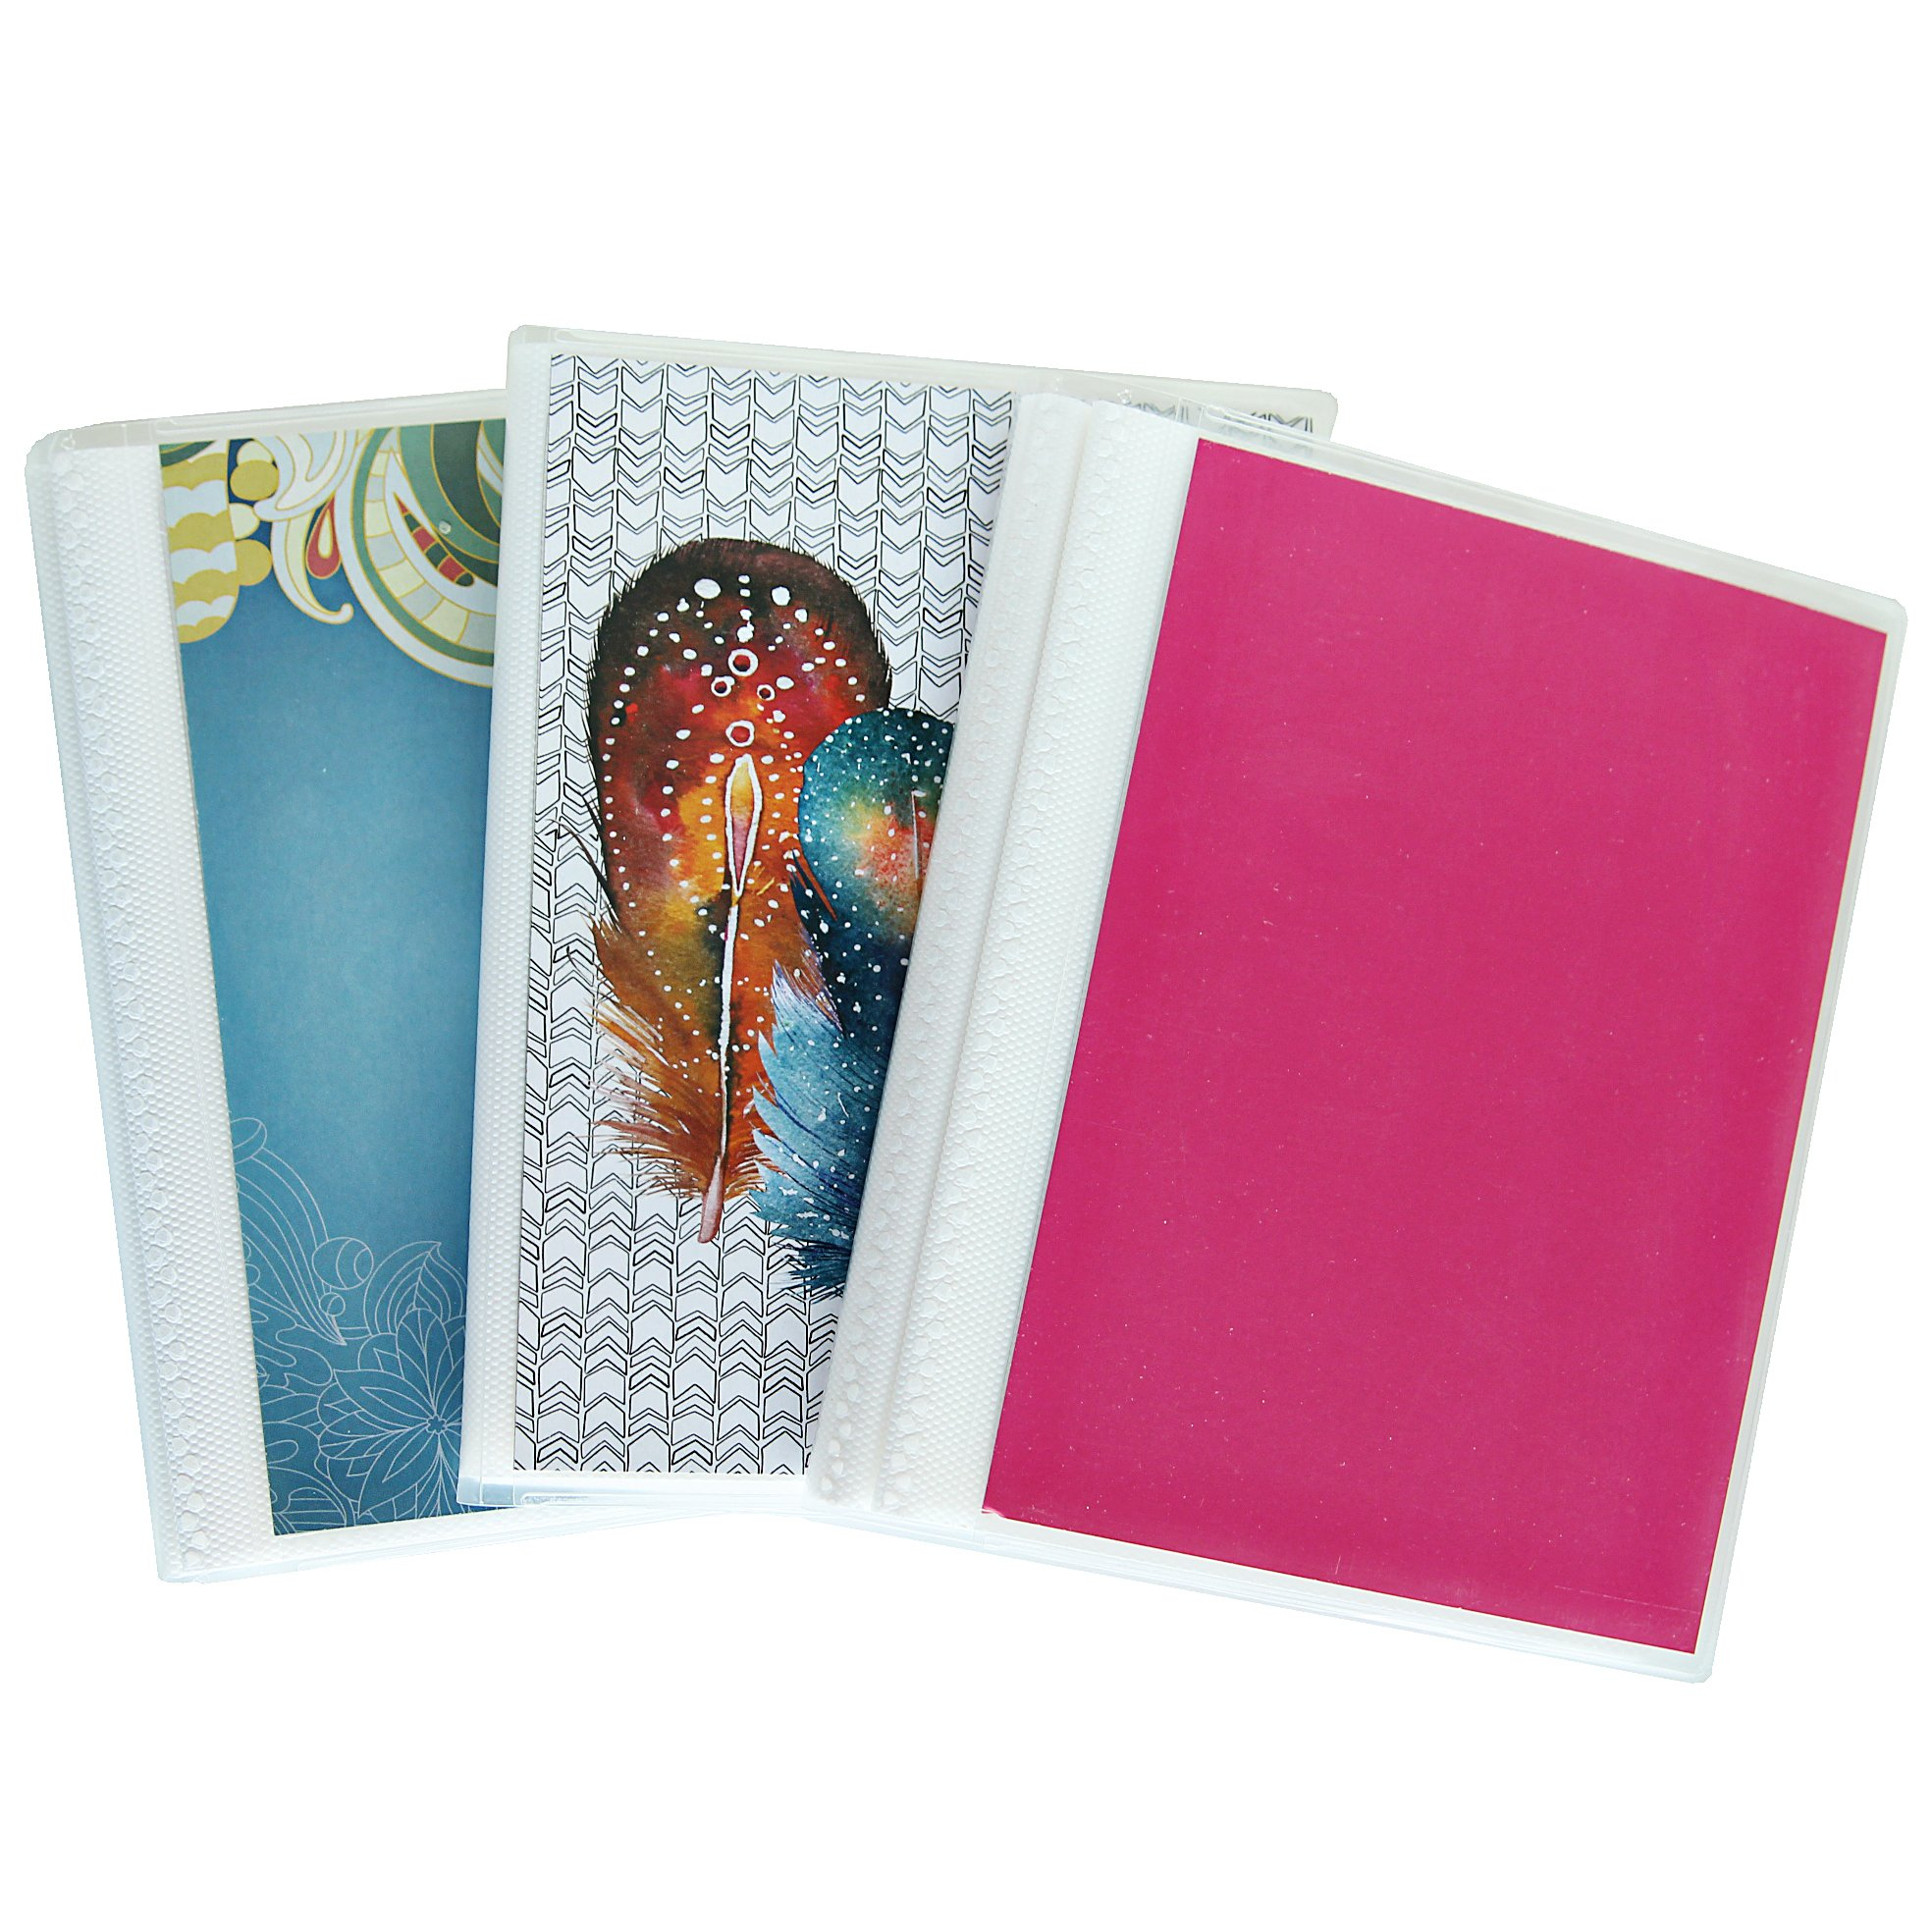 4 x 6 Photo Albums Pack of 3, Each Mini Photo Album Holds Up to 48 4x6 Photos. Flexible, Removable Covers Come in Random, Assorted Patterns and Colors. by CocoPolka